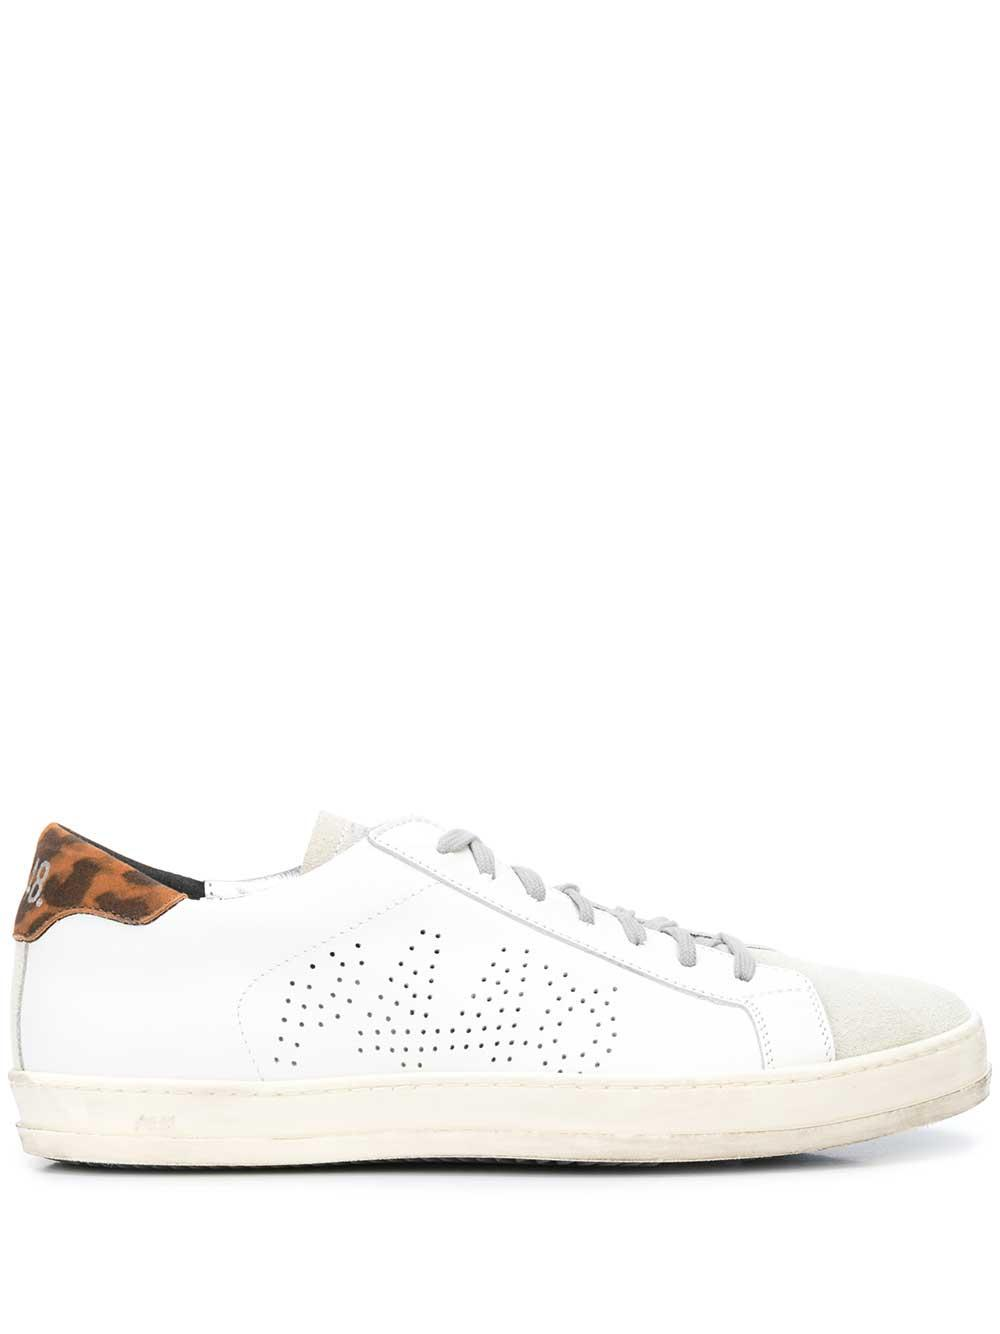 P448 Perforated Sneaker With Leopard Tab Item # F9JOHN-LEO